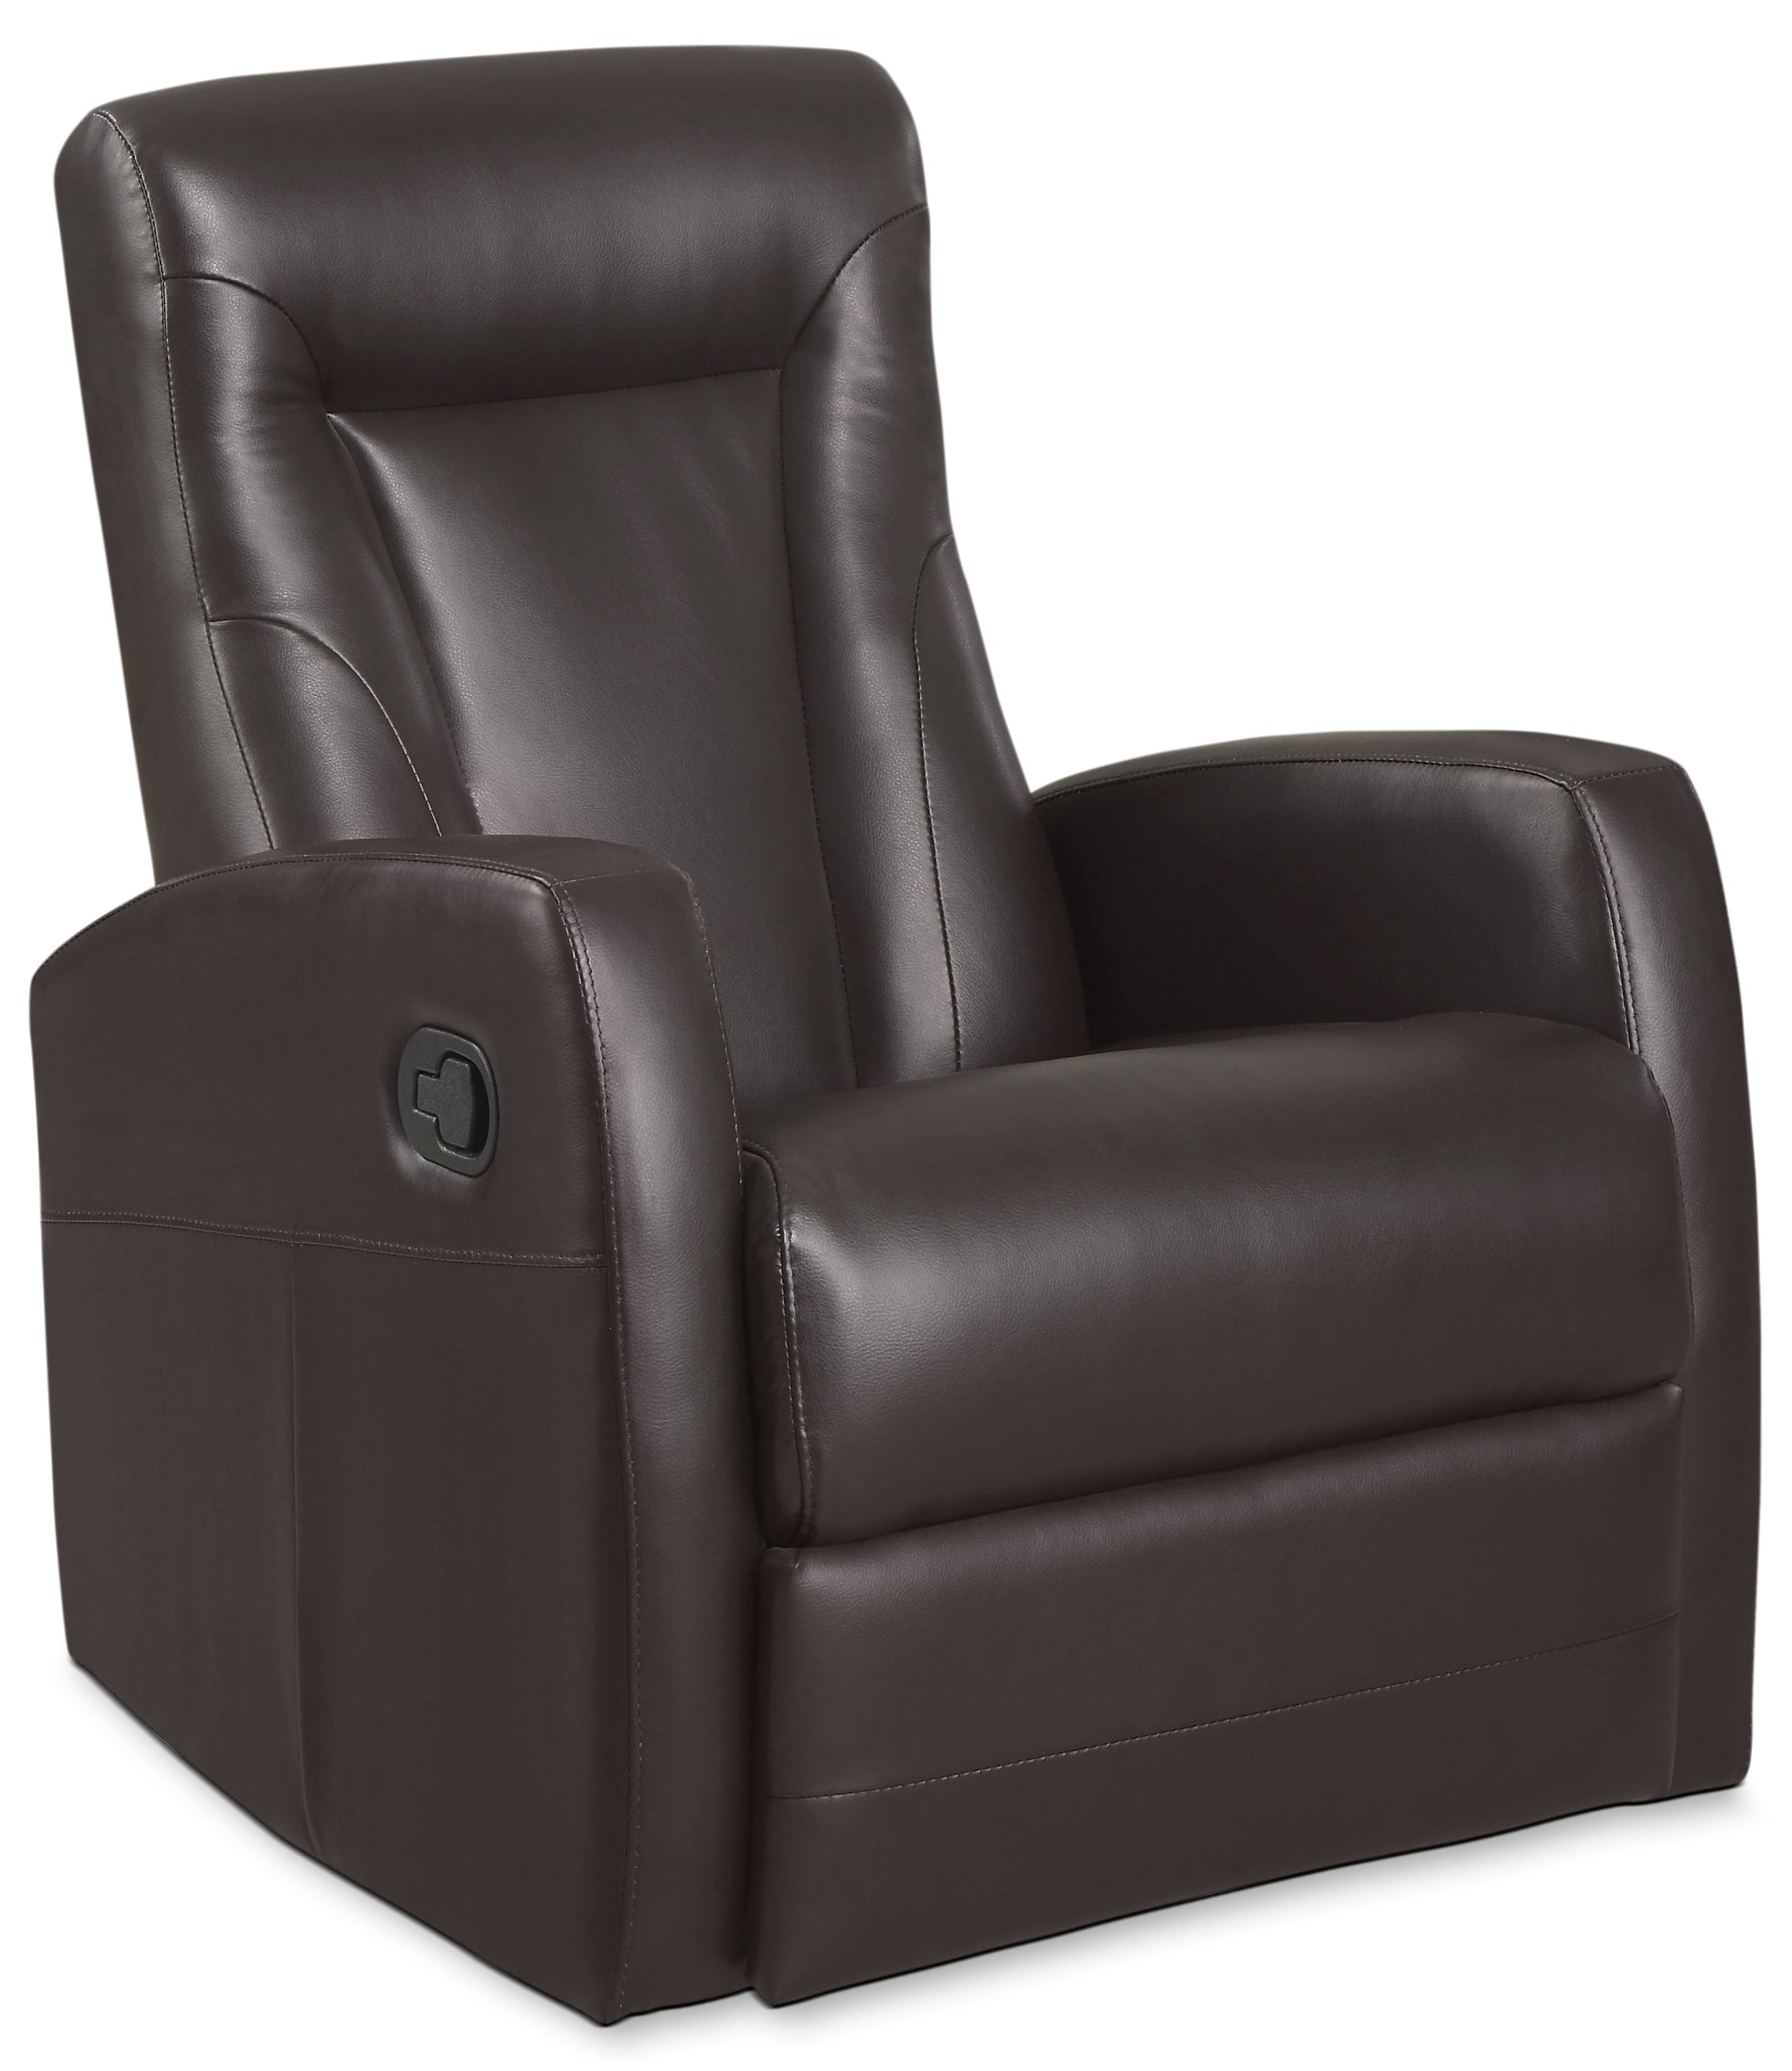 Molly Bonded Leather Swivel Recliner - Brown